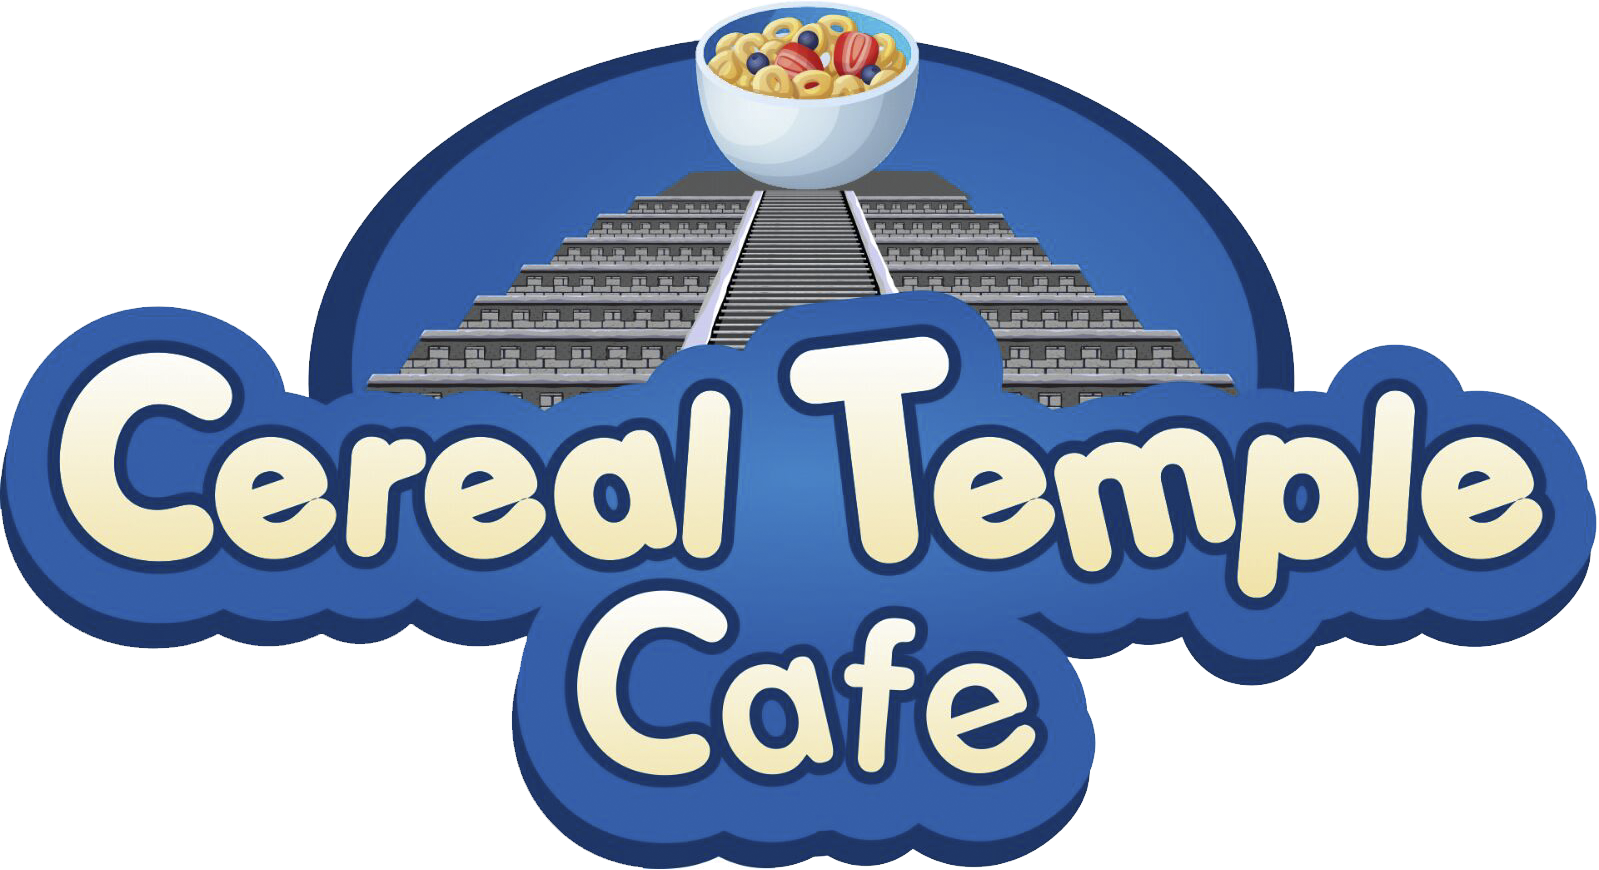 Cereal Temple Cafe